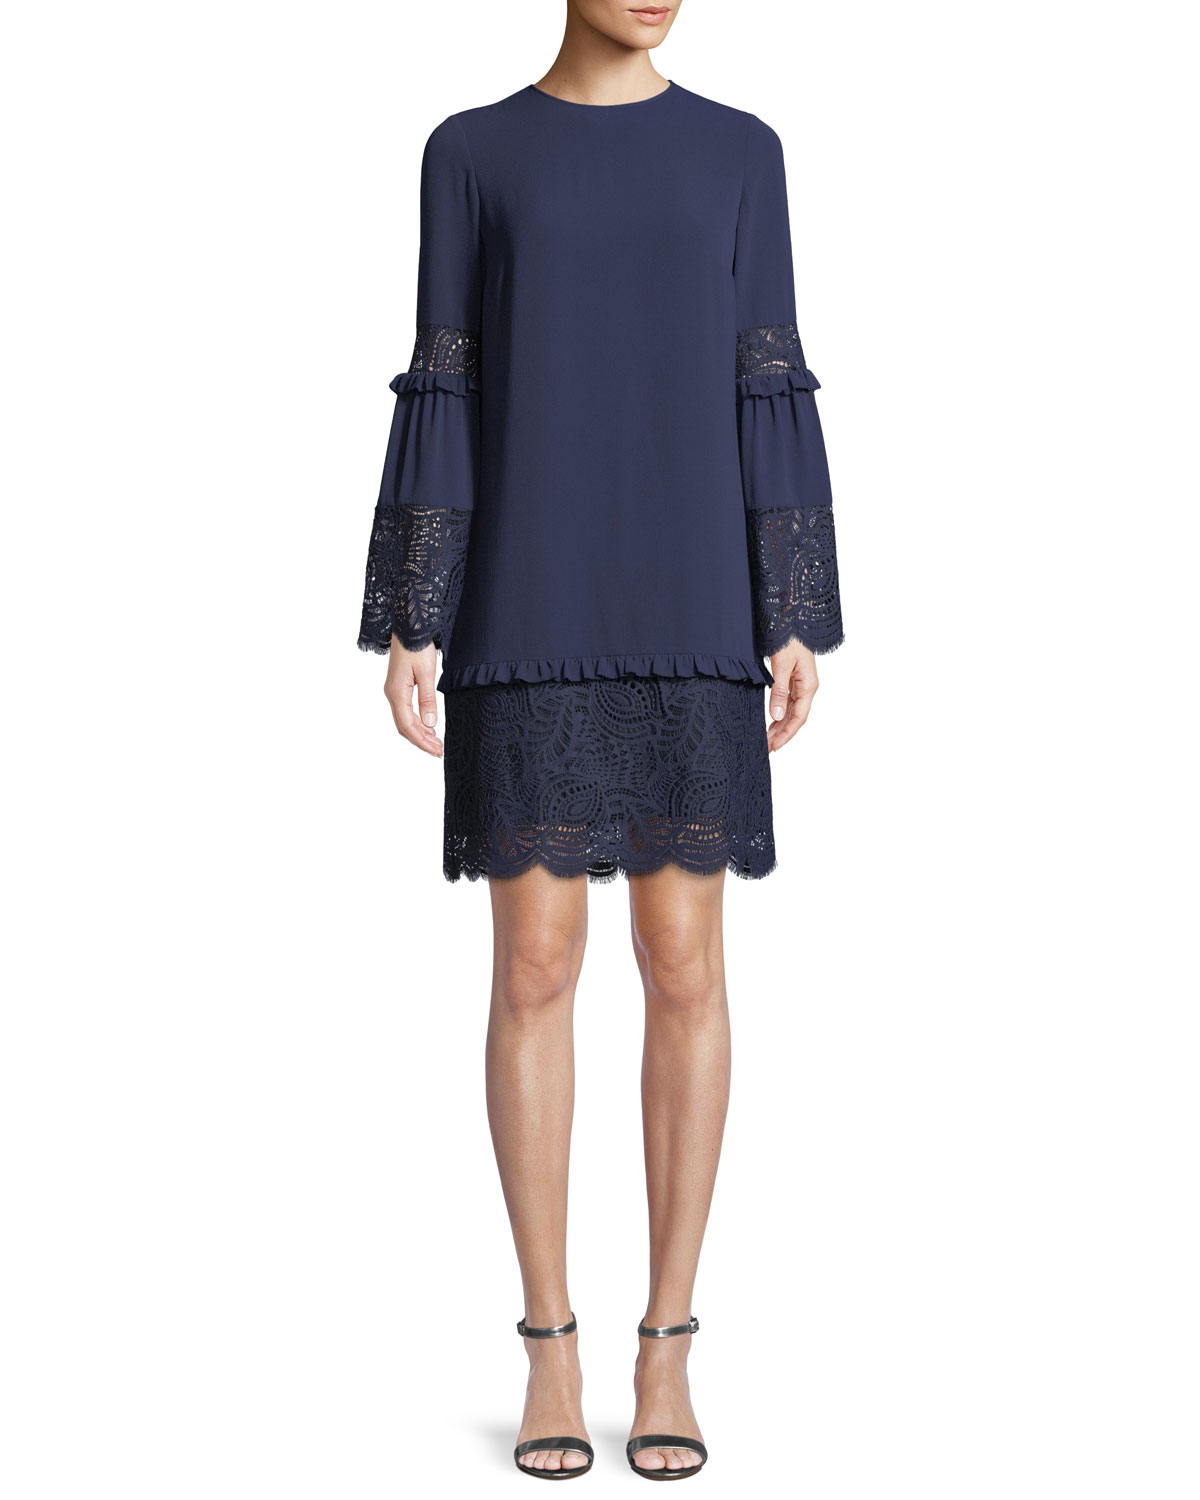 MICHAEL MICHAEL KORS BELL-SLEEVE DRESS WITH SCALLOPED LACE